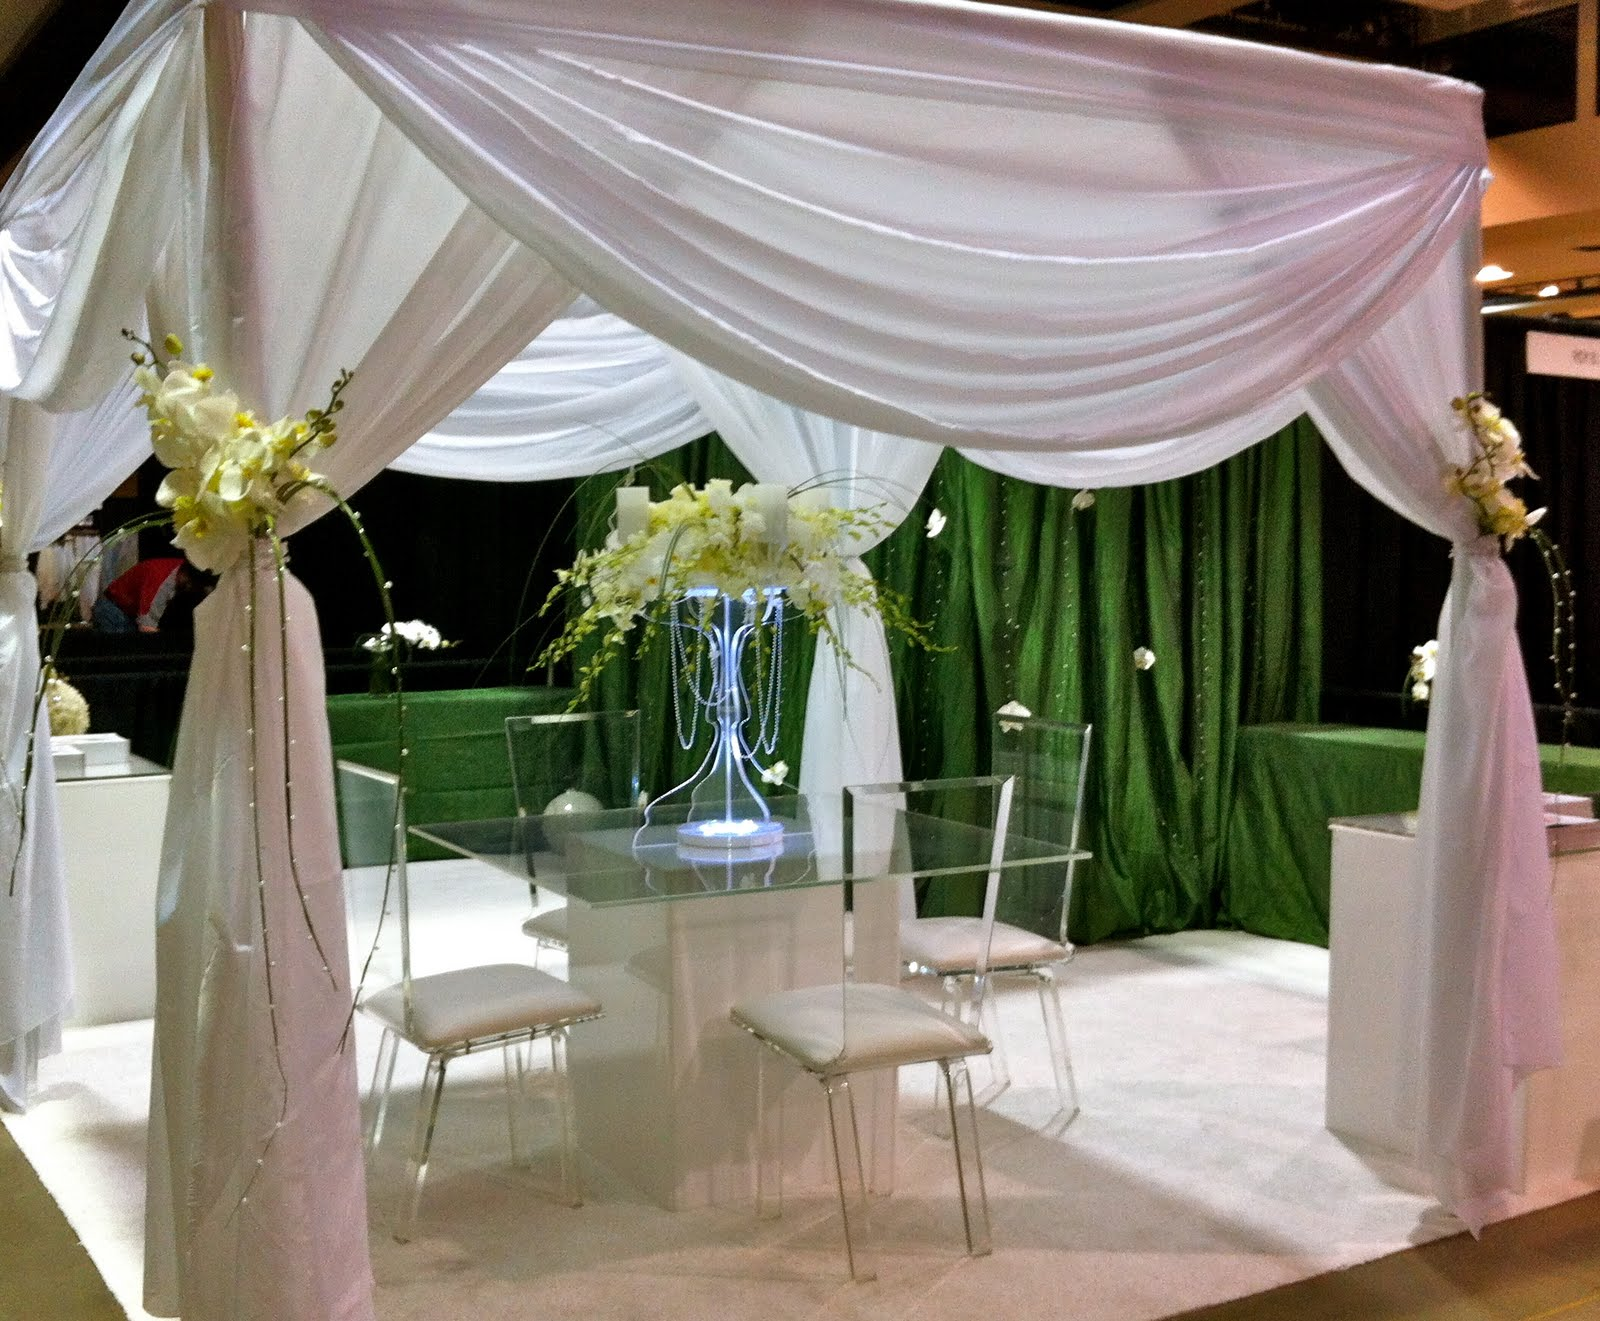 Wedding Expo Booth: Tres Chic Weddings & Events: Bridal Show Booth Design